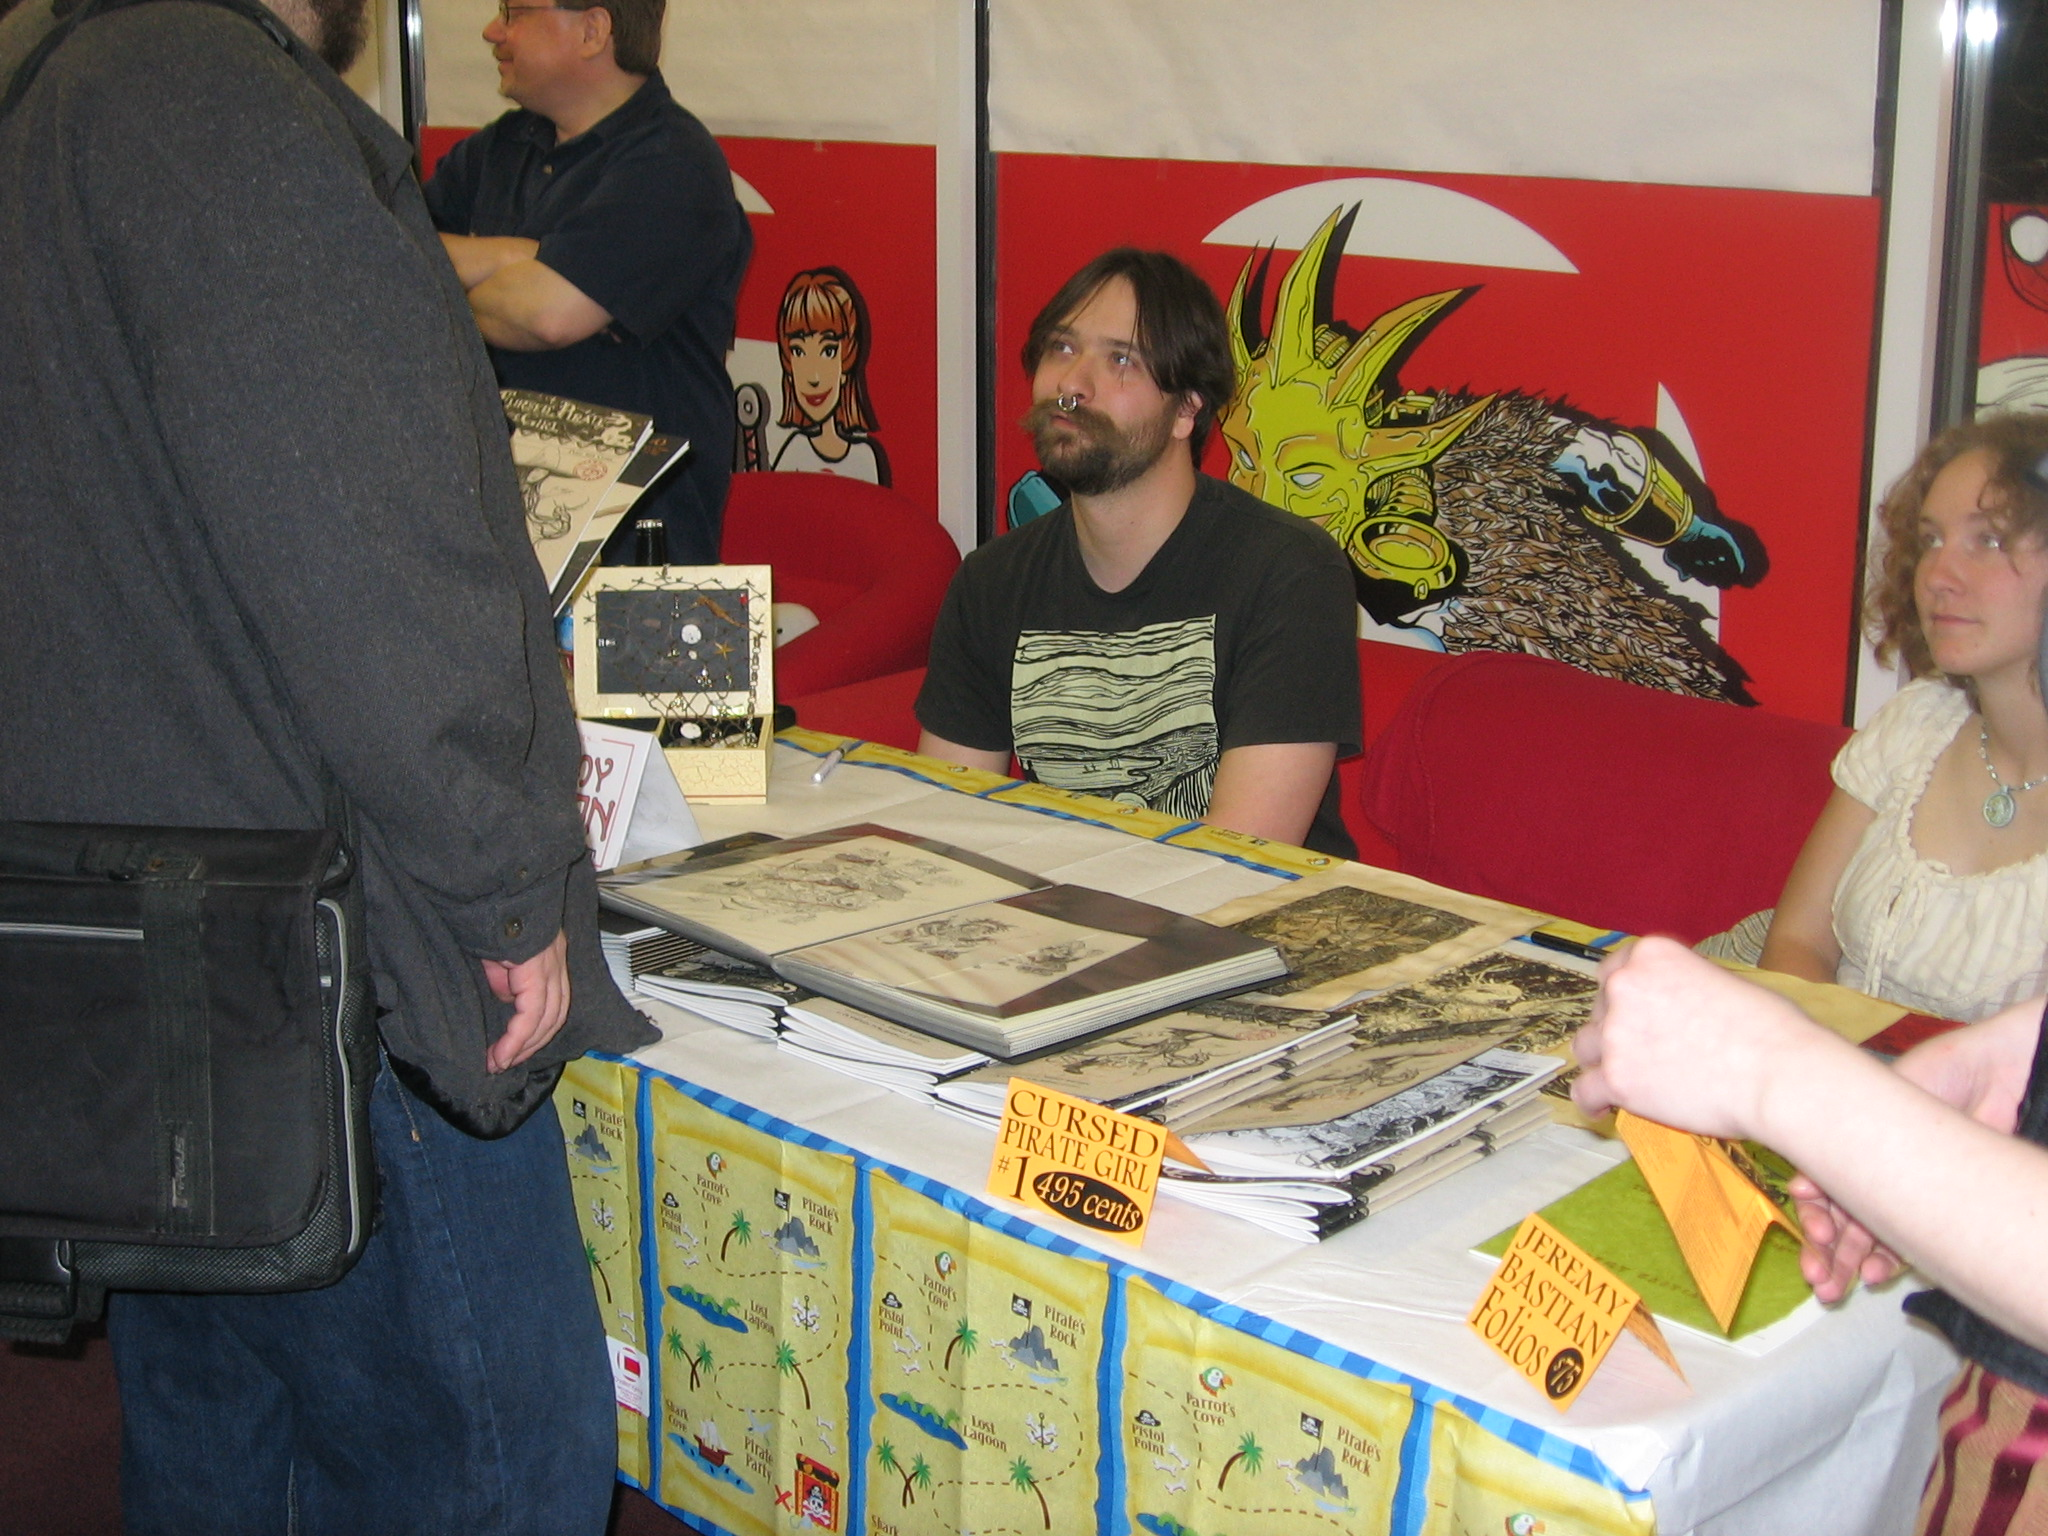 Jeremy Bastian at the signing table